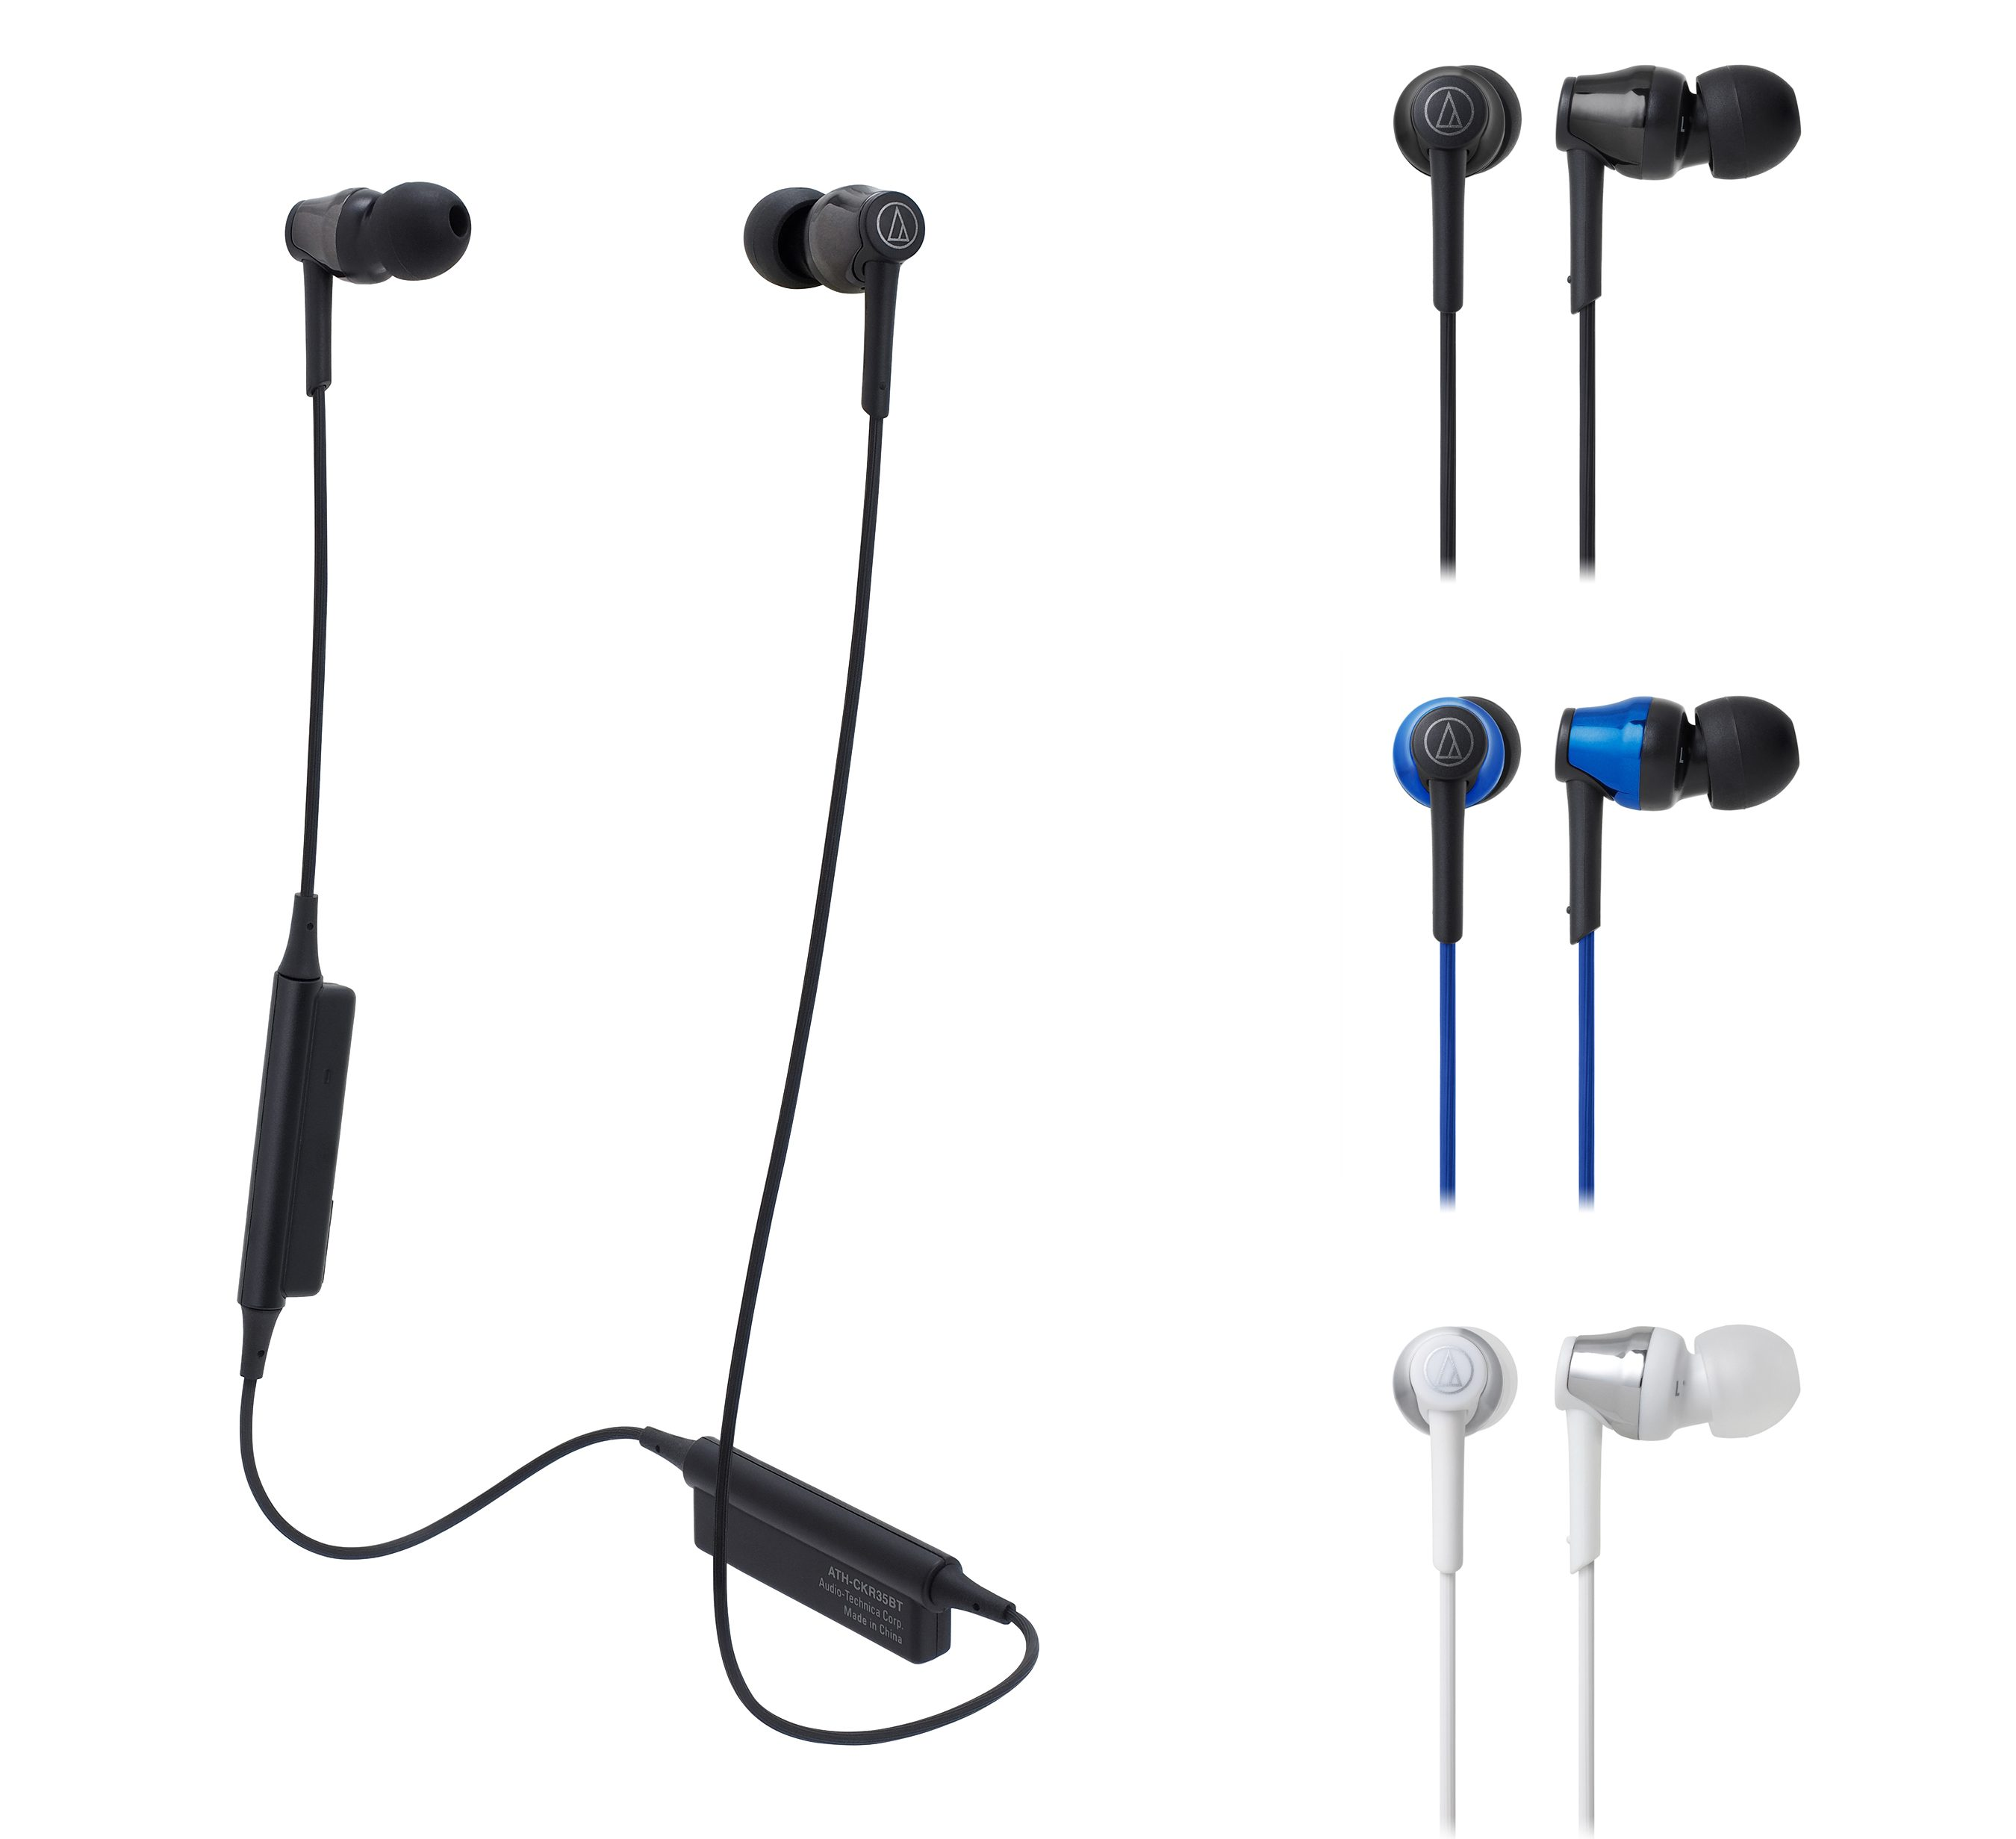 Tai nghe bluetooth Audio Technica ATH-CKR35BTSV